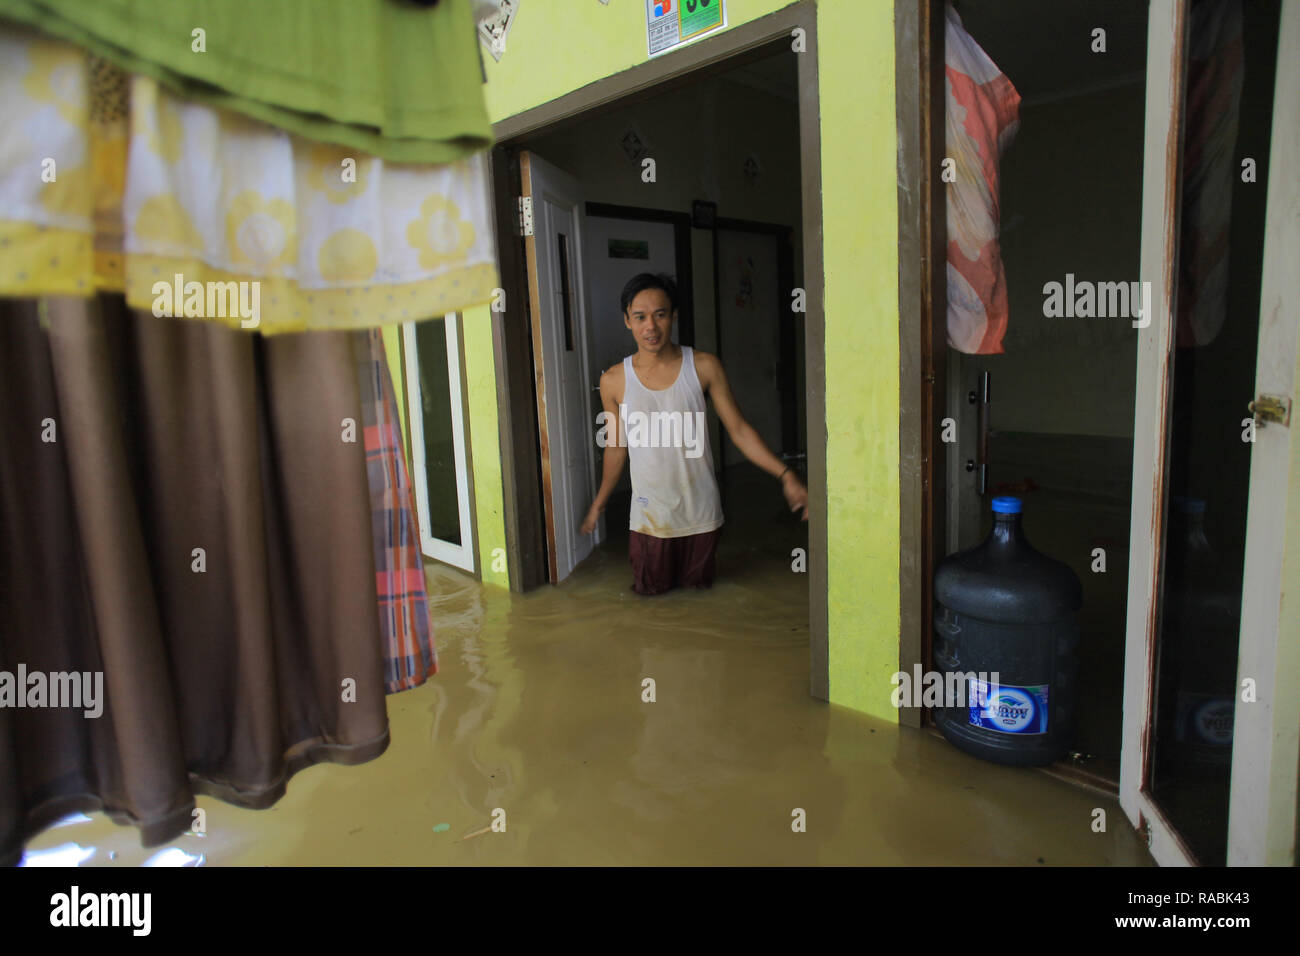 Resident seen inside his house during a flood. Dozens of residents were evacuated due to the flood disaster that hit village Rancamaya Cikobak RT 03/04, Rancamaya, Bogor City. This flood began to hit dozens of houses in Kampung Rancamaya Cikobak due to the flow of the Cisadane tributary, the Cimakaci River overflowing. - Stock Image